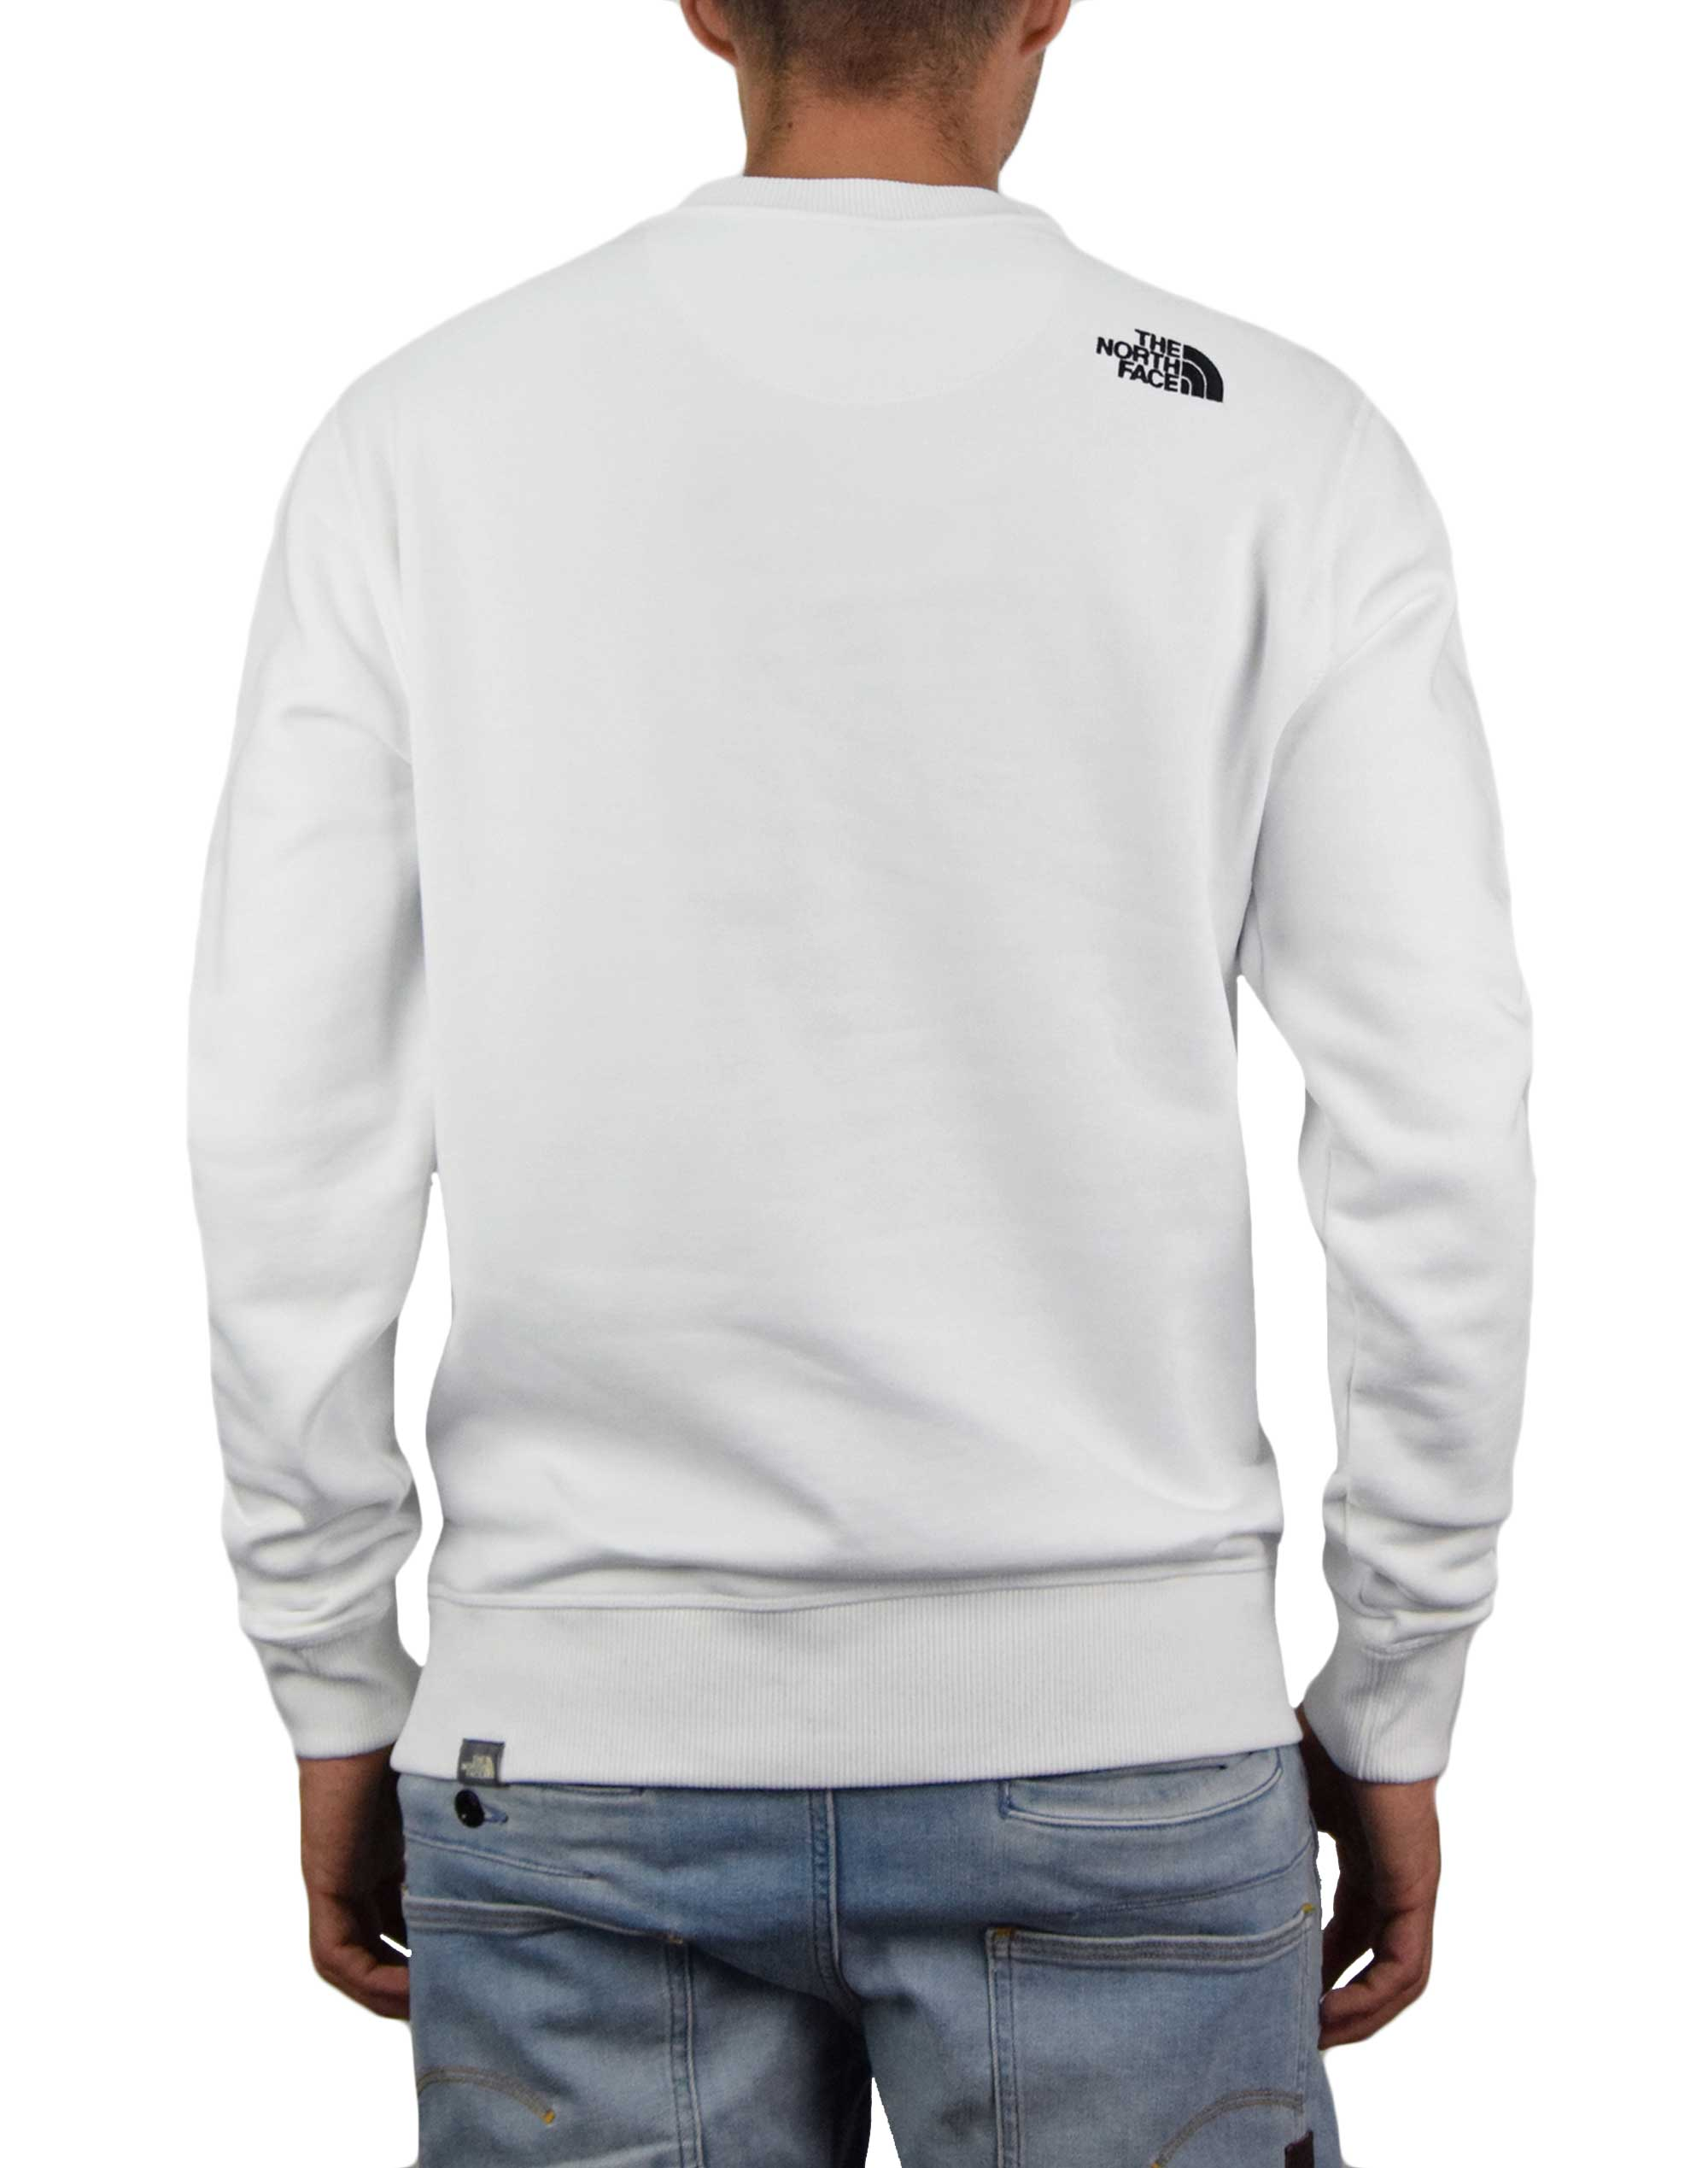 The North Face Drew Peak Crew (NF0A4SVRLA91) White/Black